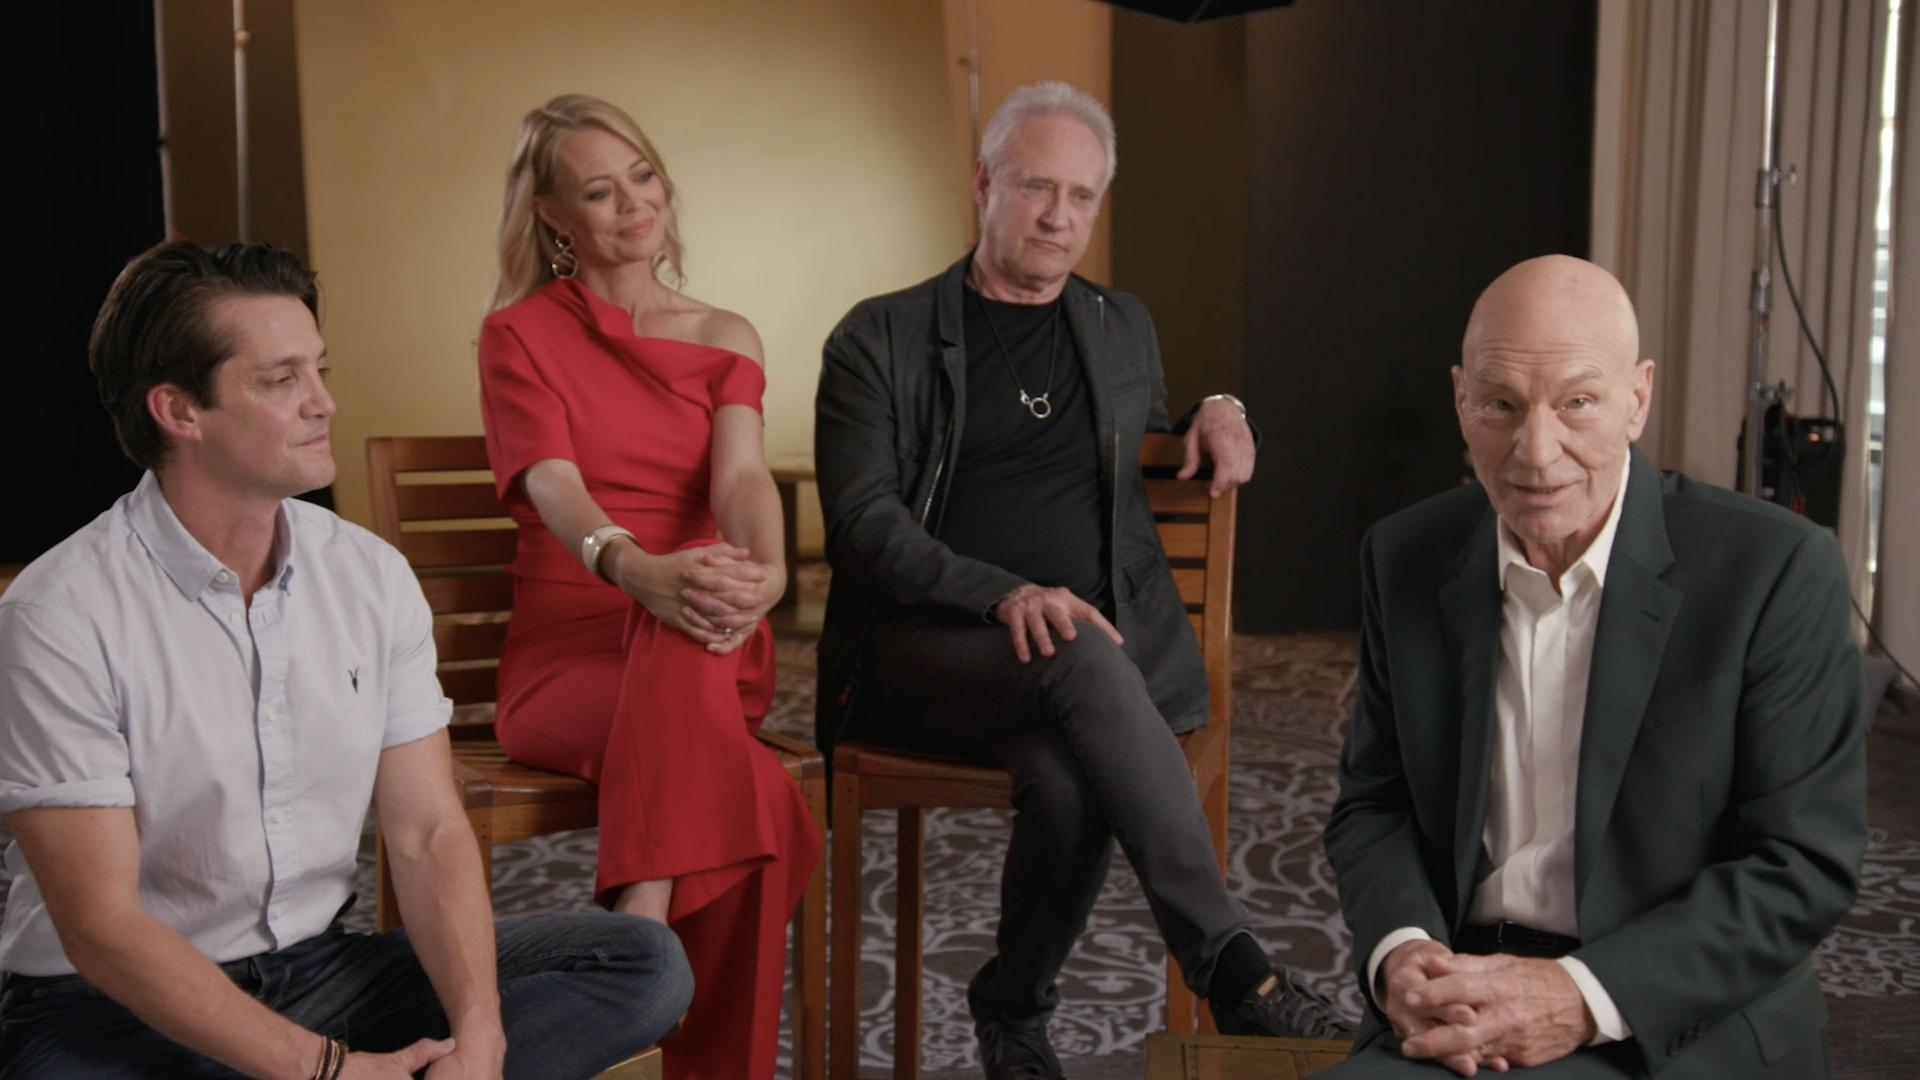 Star Trek Picard Preview some of the cast including Patrick Stewart Jeri Ryan and Brent Spiner